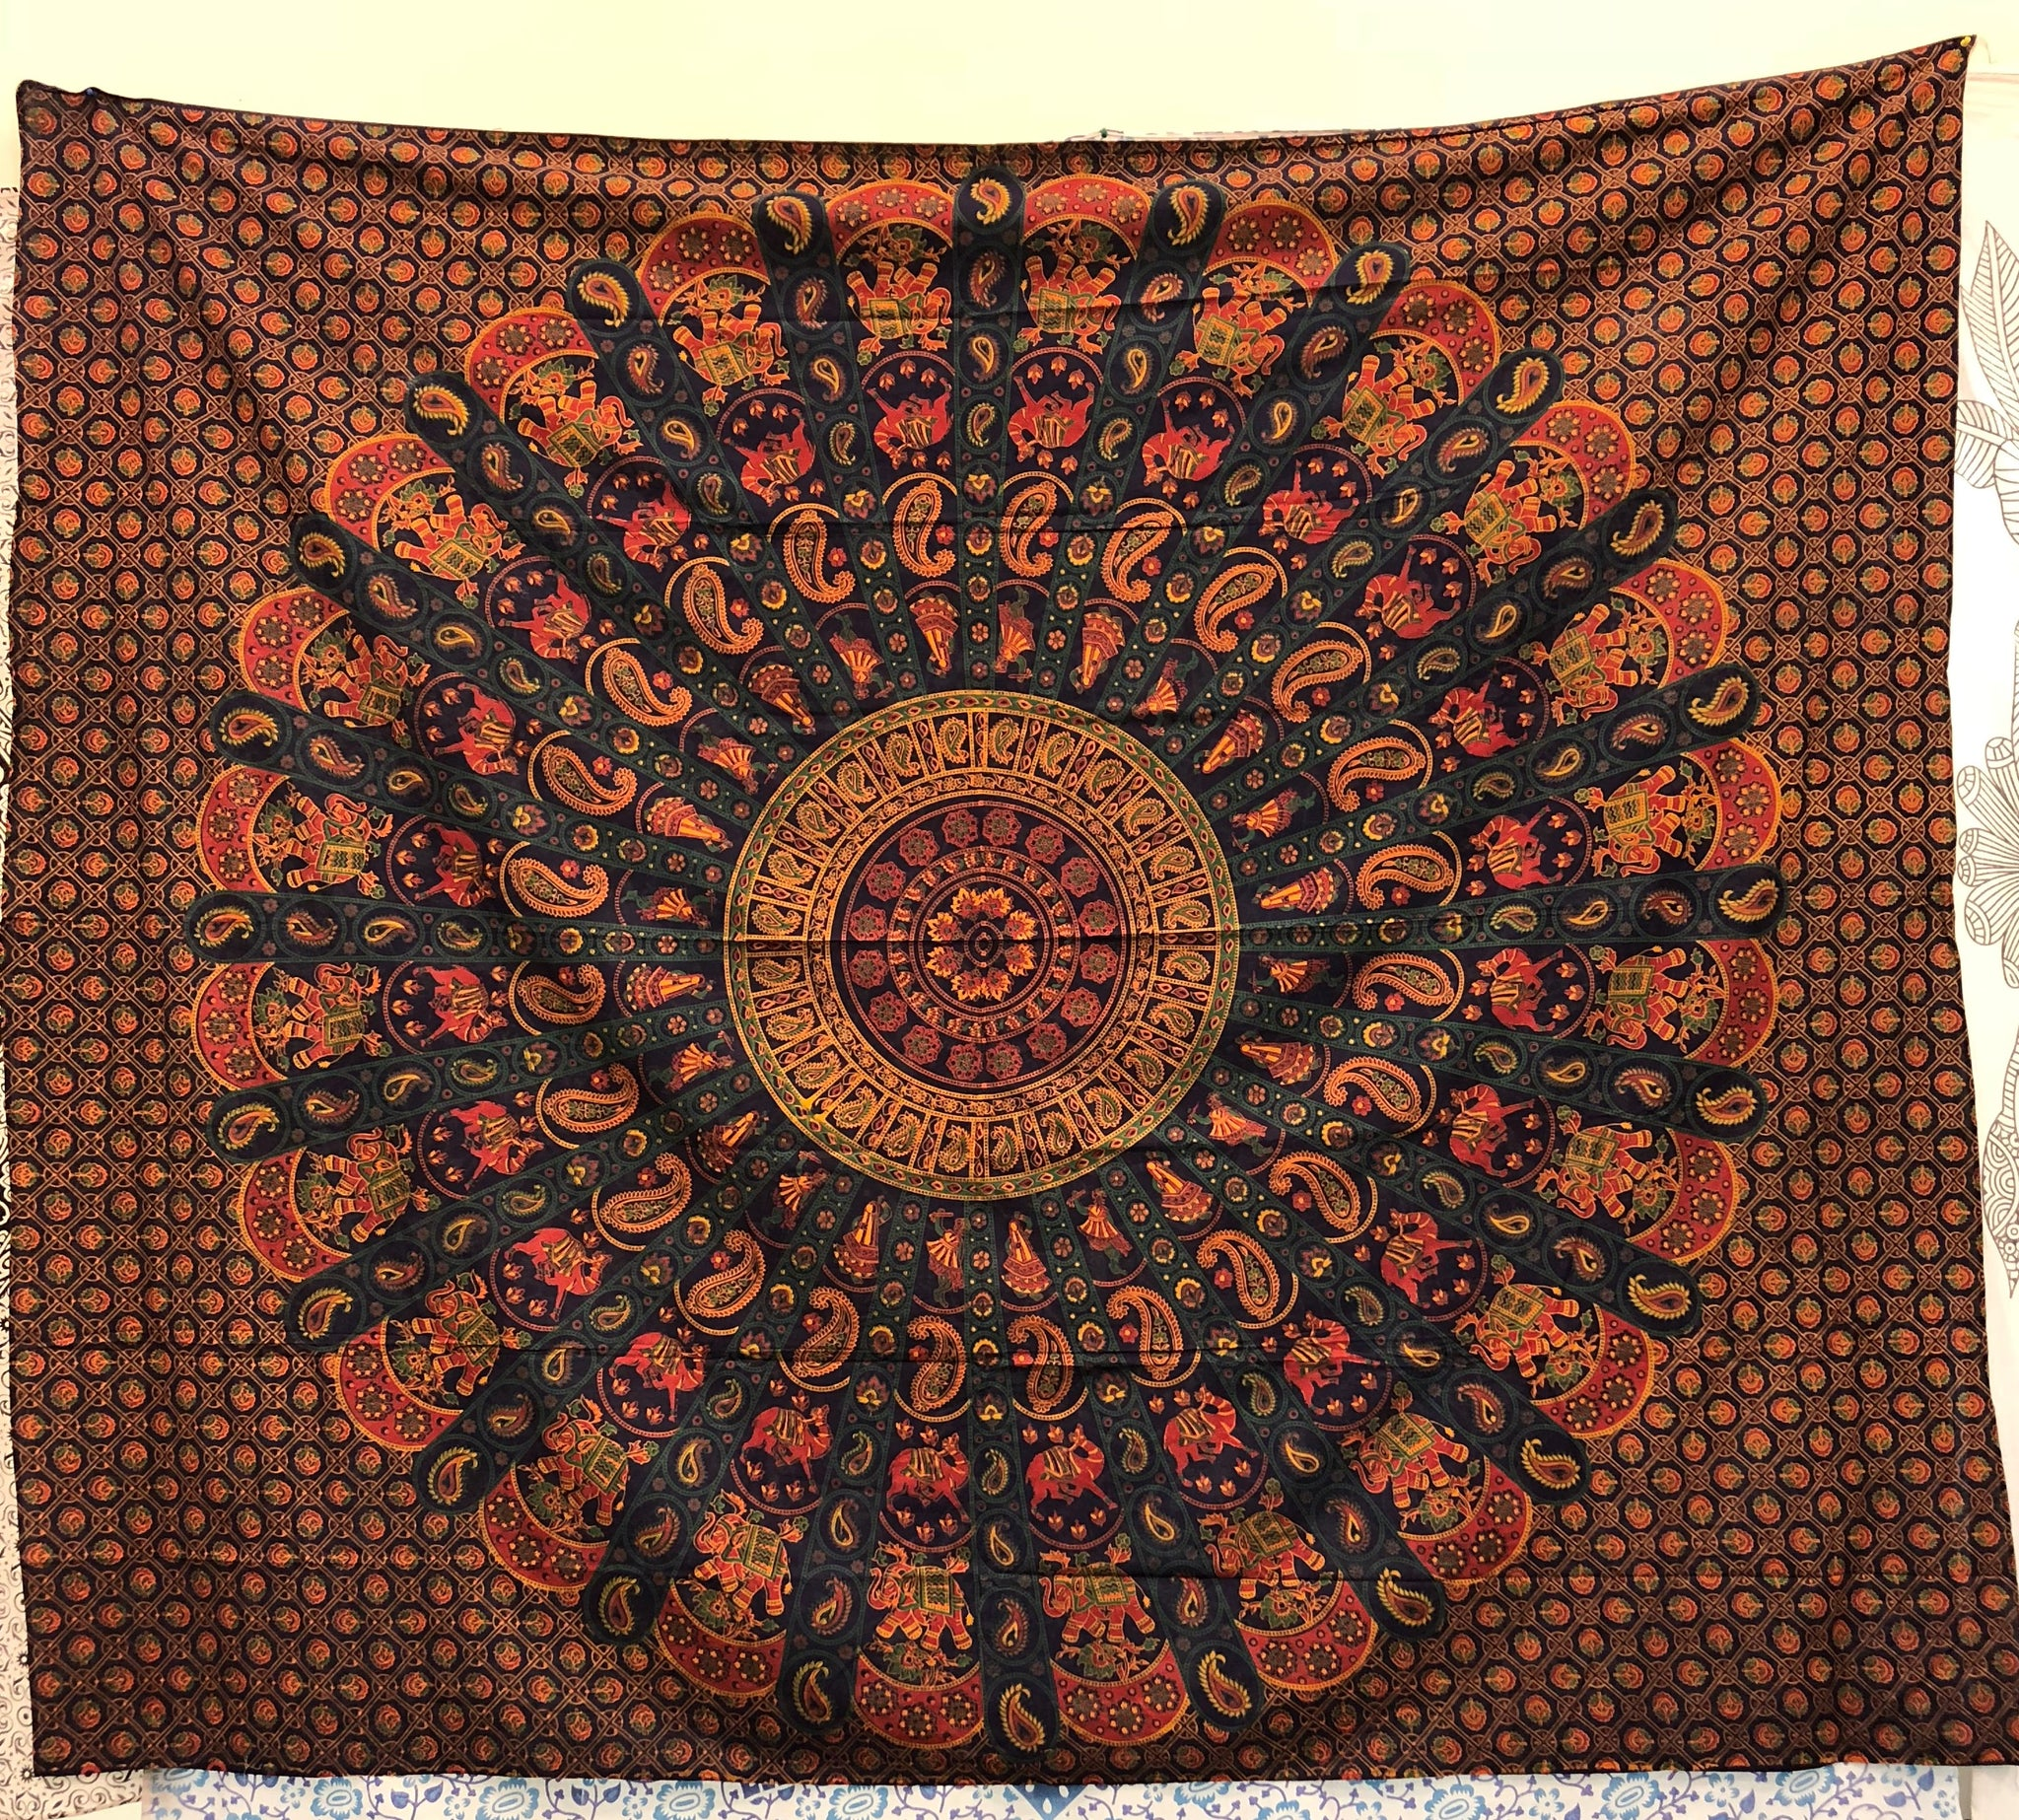 jaan-imports - Navy Orange Mandala Queen Tapestry - Khoobsurat Gift Shop - Queen Tapestry